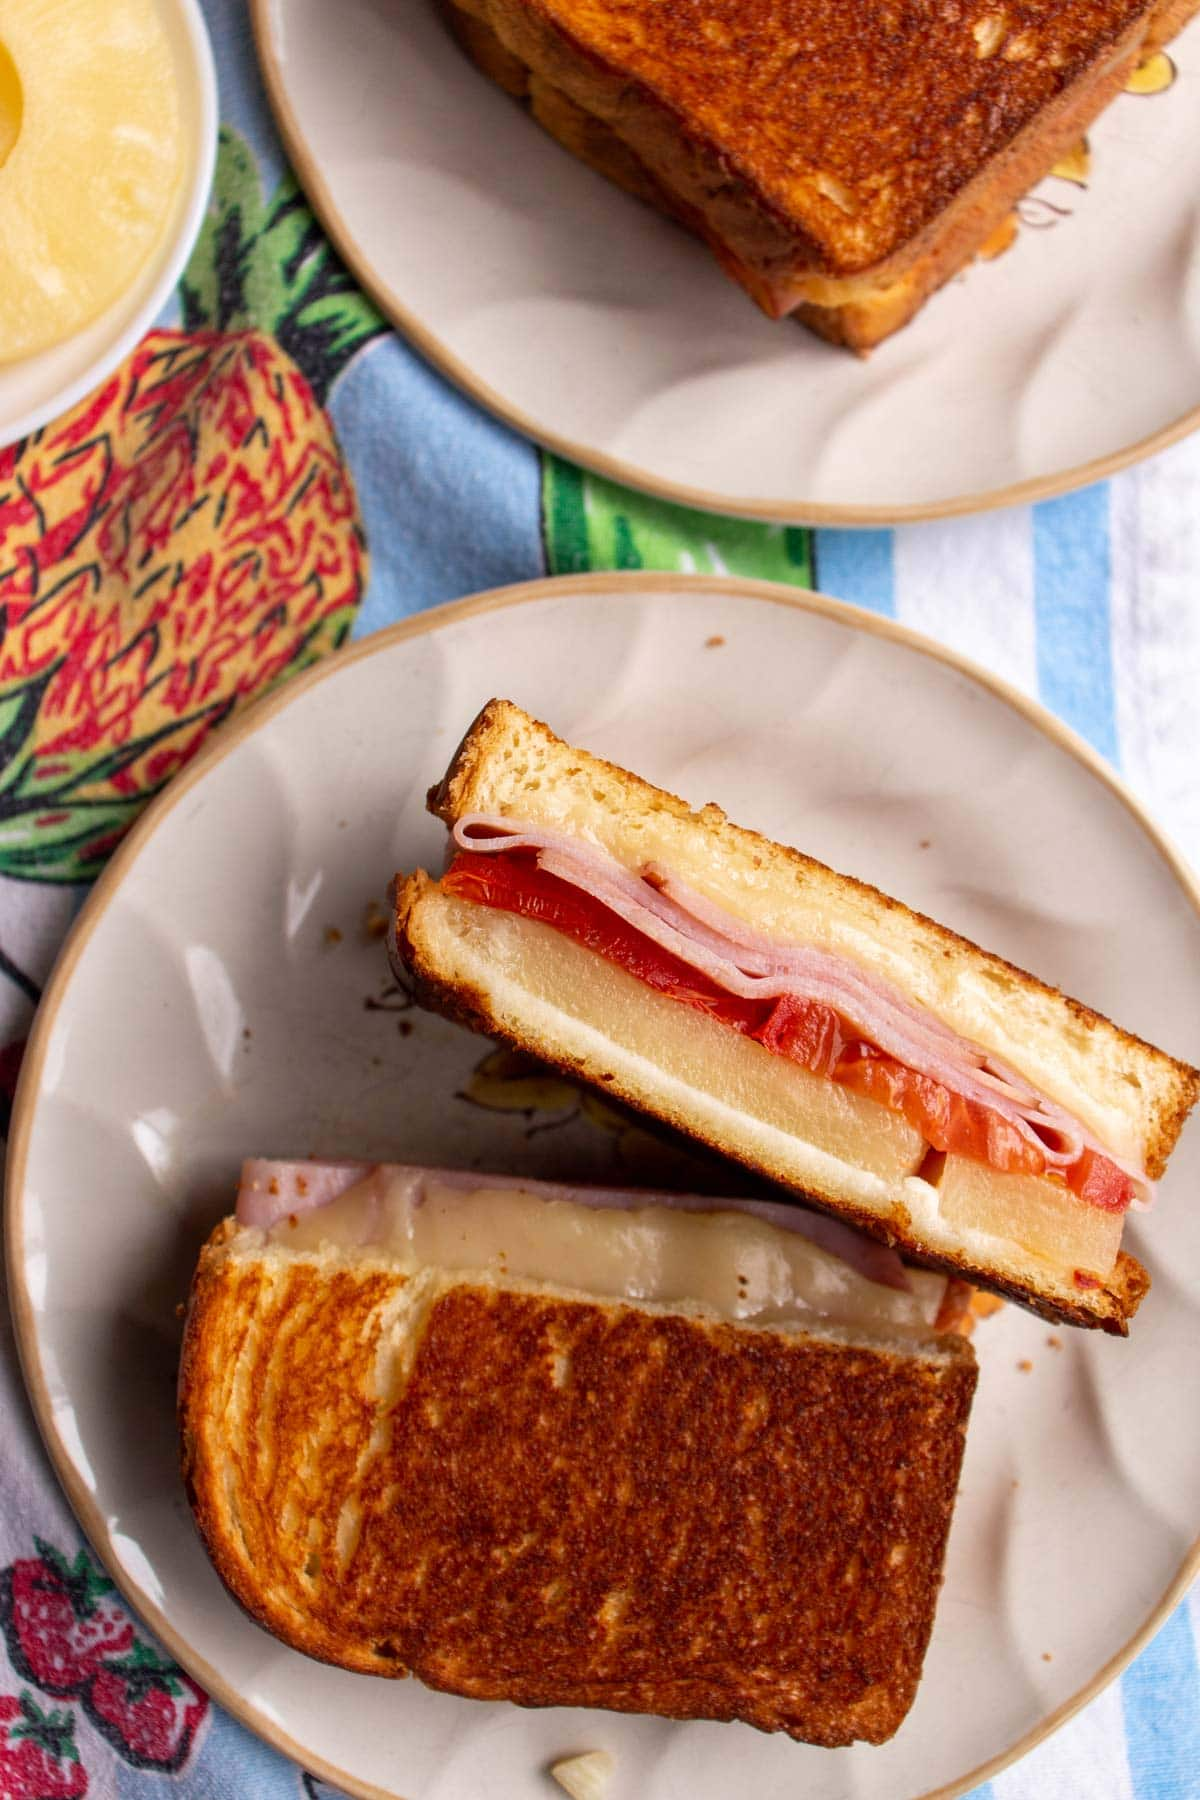 A halved grilled cheese sandwich on a plate showing off the ham and pineapple filling.